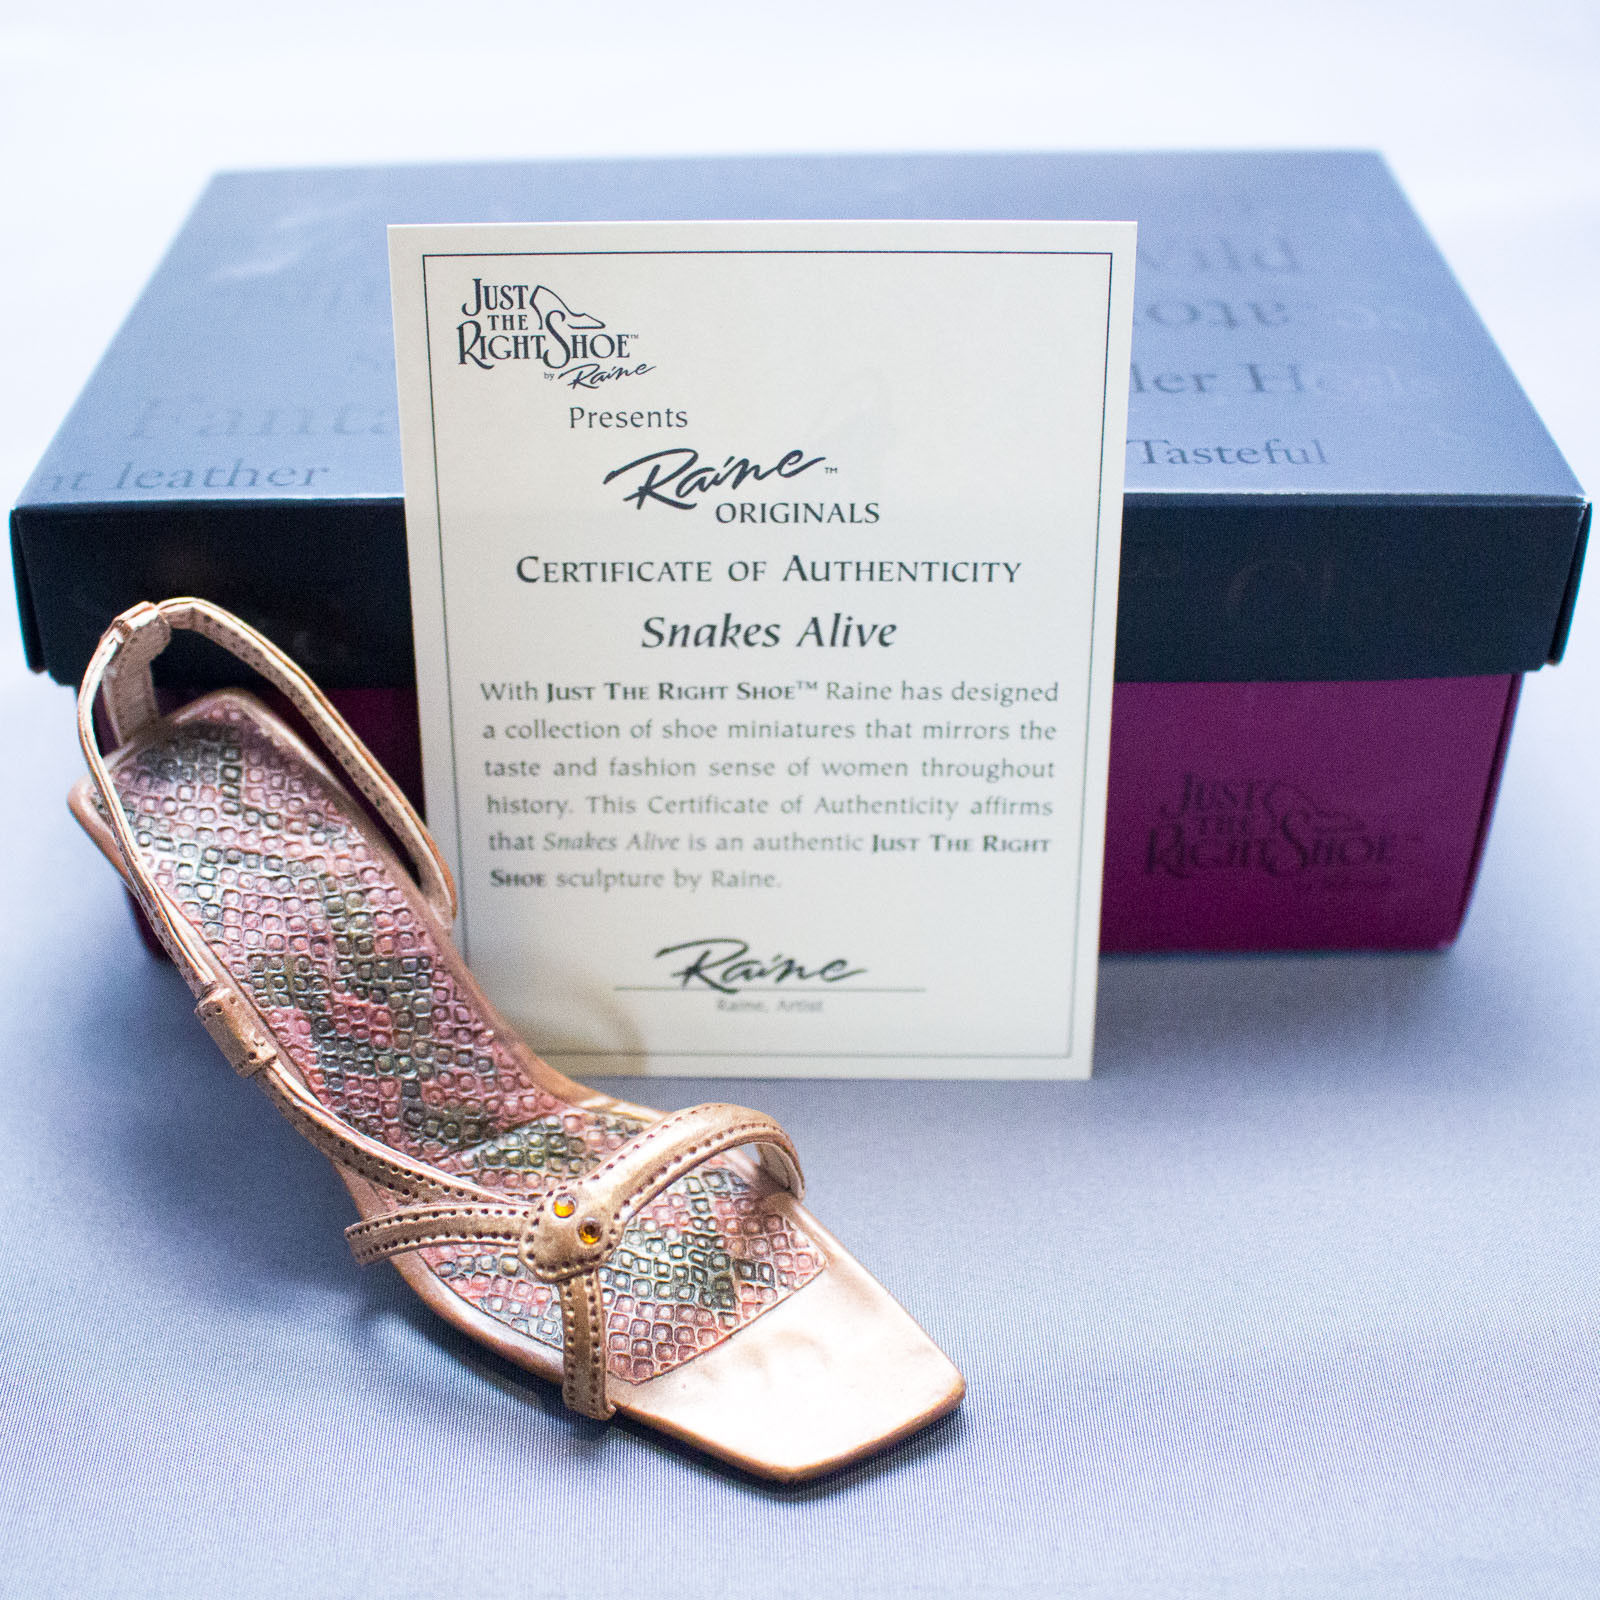 Lenox Willitts Just The Right Shoe By Raine Snakes Alive 25168 Nib Coa 13 07